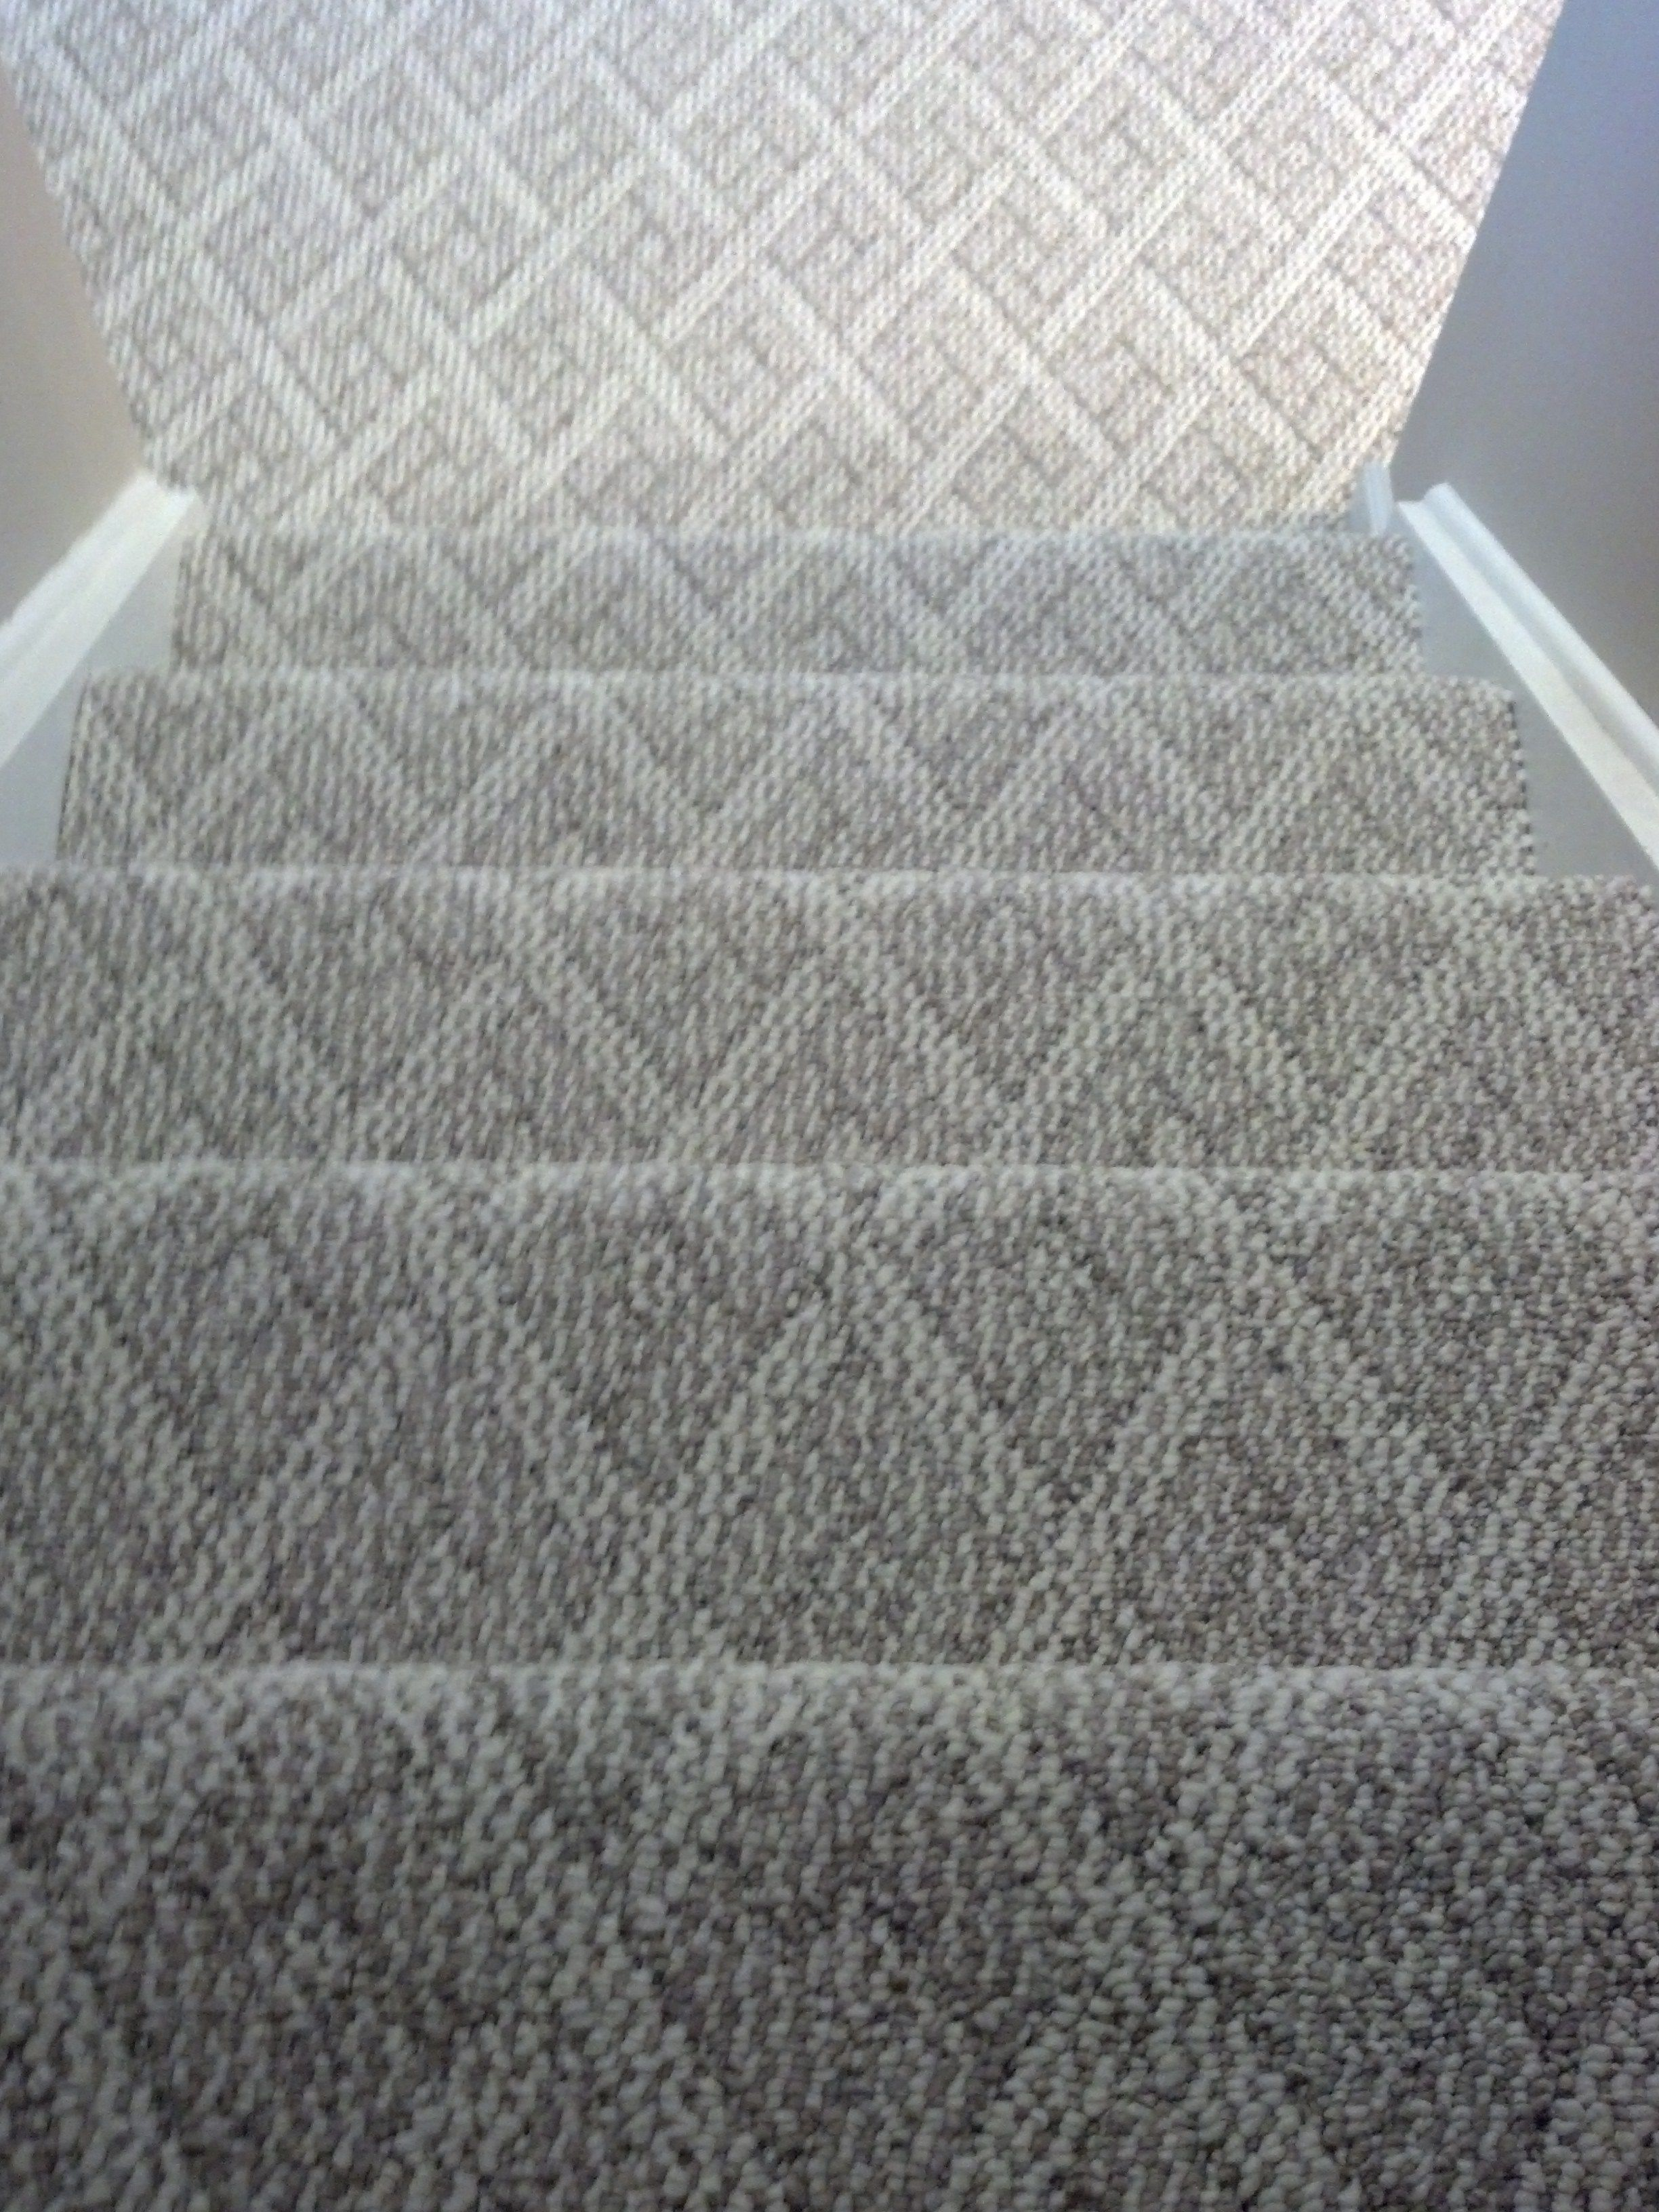 Berber Carpet Cincinnati Ohio Installed On Steps And Basement Family Room Note Notice The Pattern Lining Up On Each Step And Floor